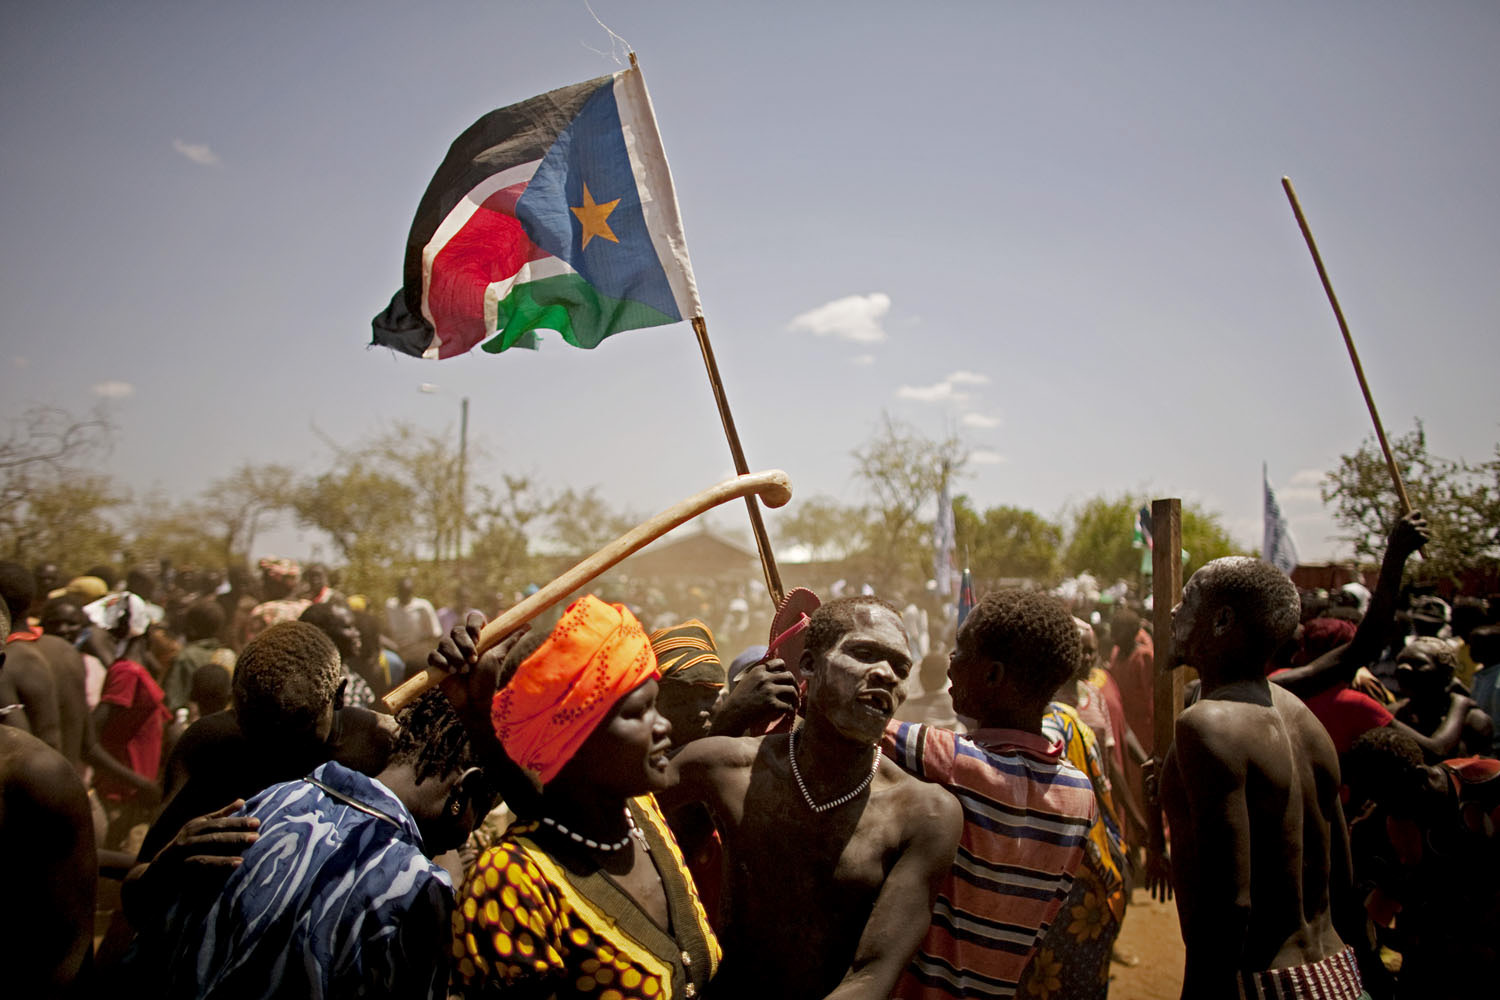 February 4, 2011. Southern Sudanese from the pastoralist Taposa tribe take part in a nationalist celebration in the remote area of Kapoeta.